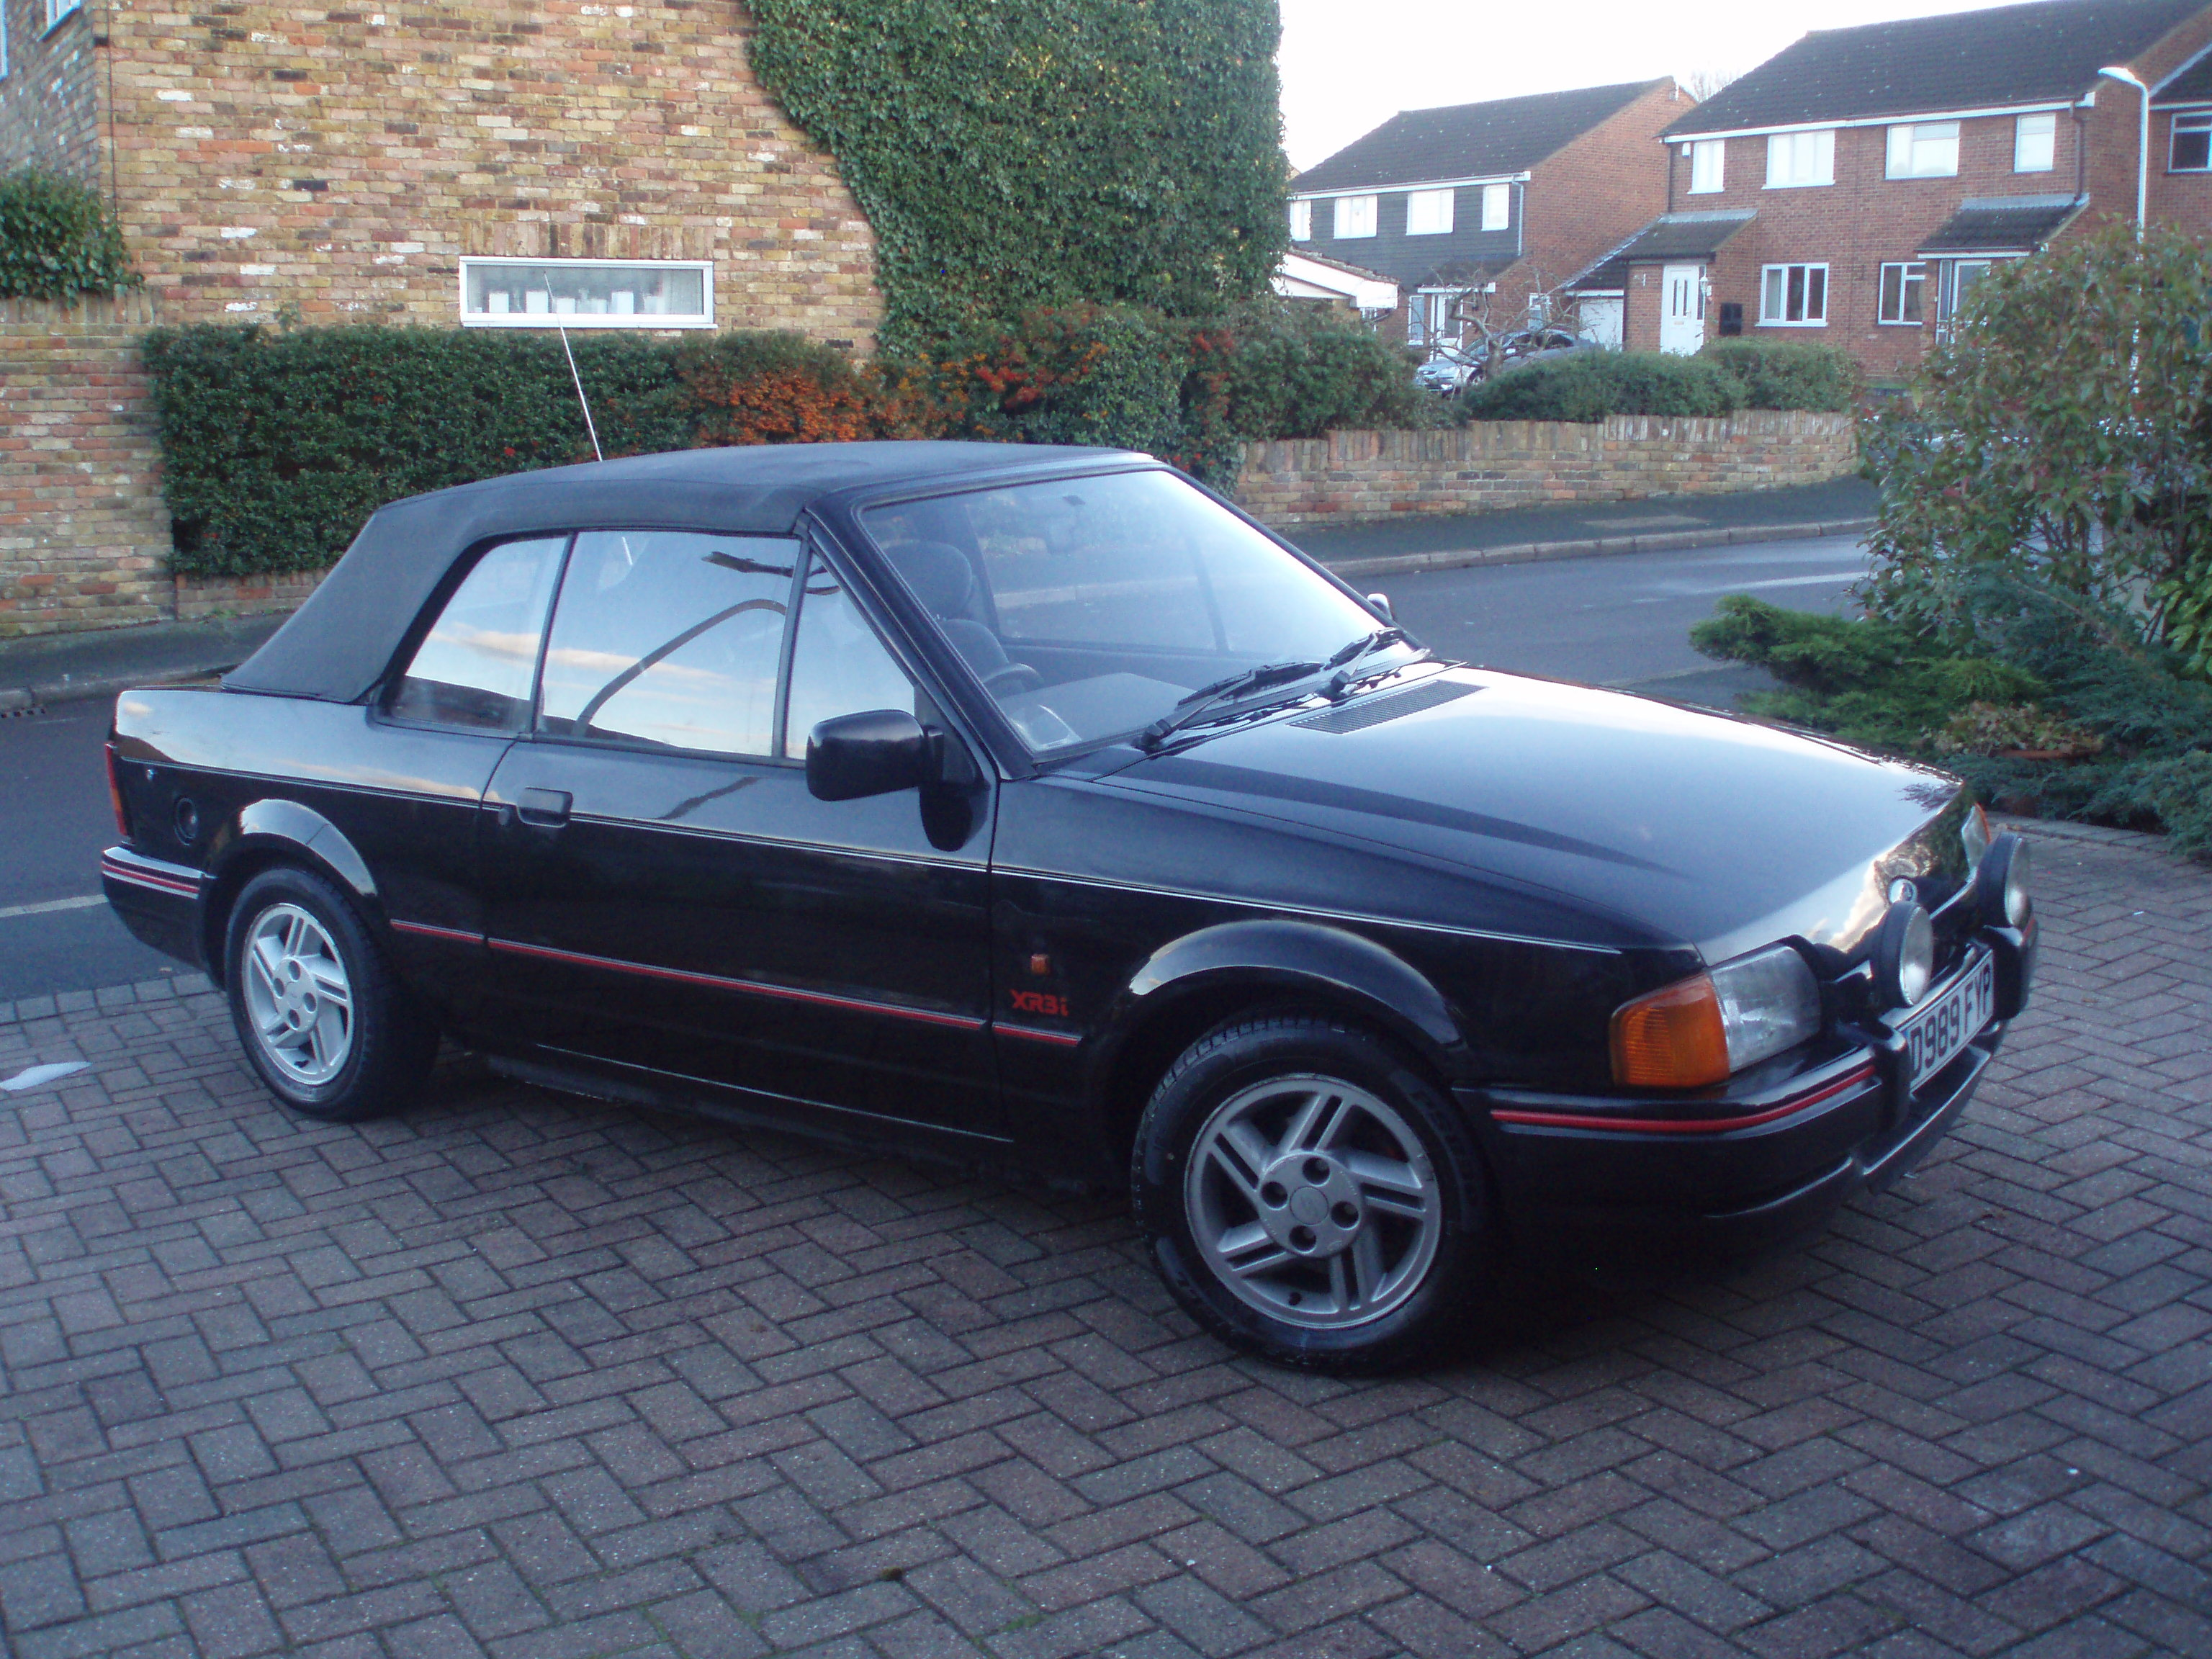 1981 Ford Escort XR3 Cabriolet